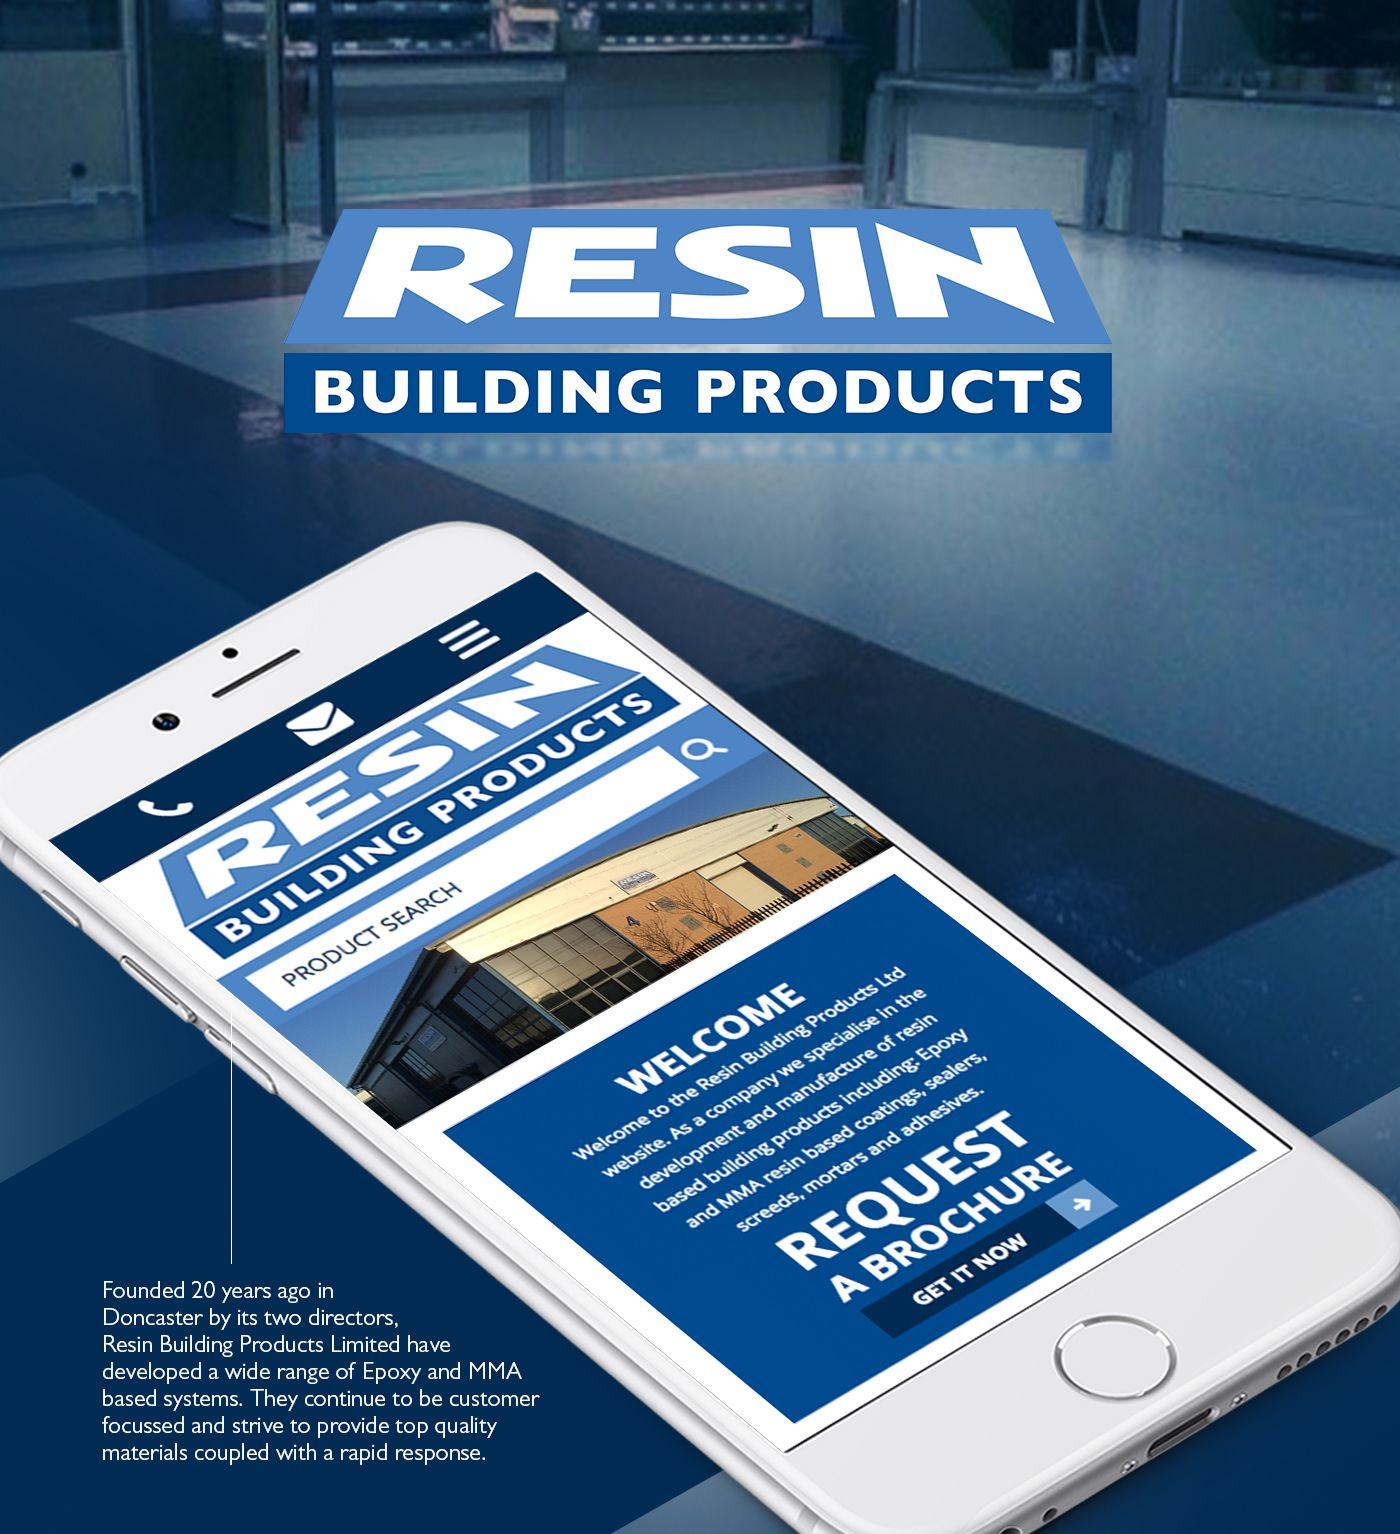 Resin Building Products Moirae Creative Agency On Behance Behance Graphicdesign Webdesign Mobilefriendly Web Design Building Resin